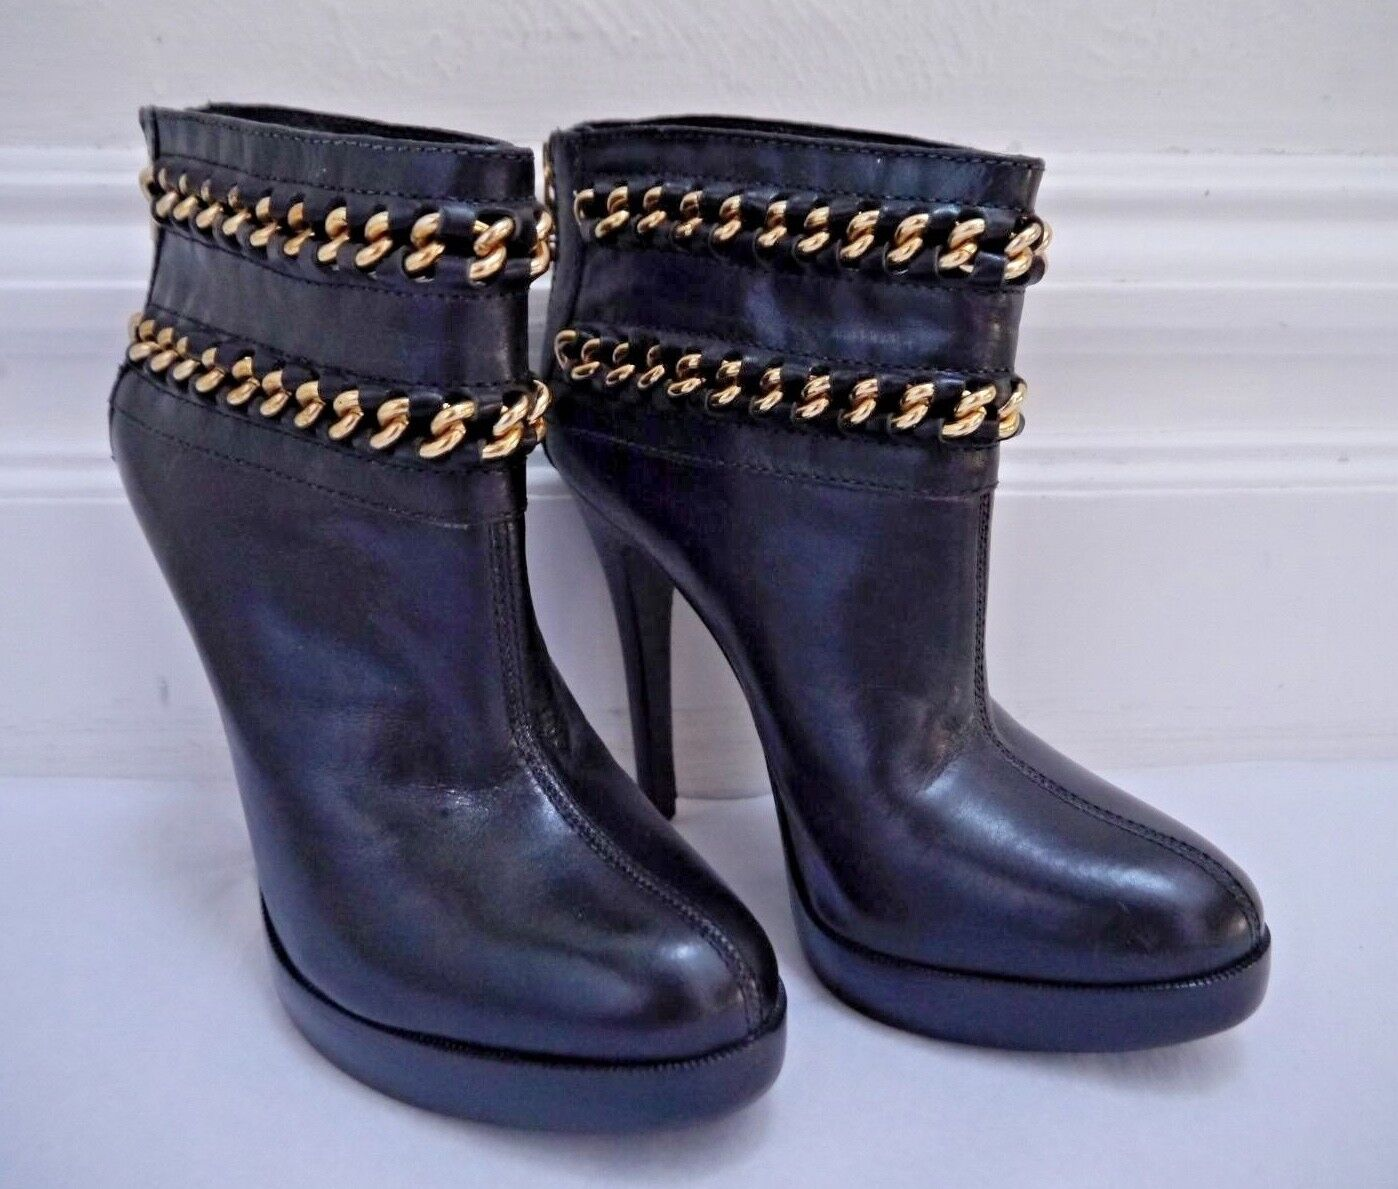 TORY BURCH  450 Lysa black leather gold chain boots booties size 7 WORN ONCE